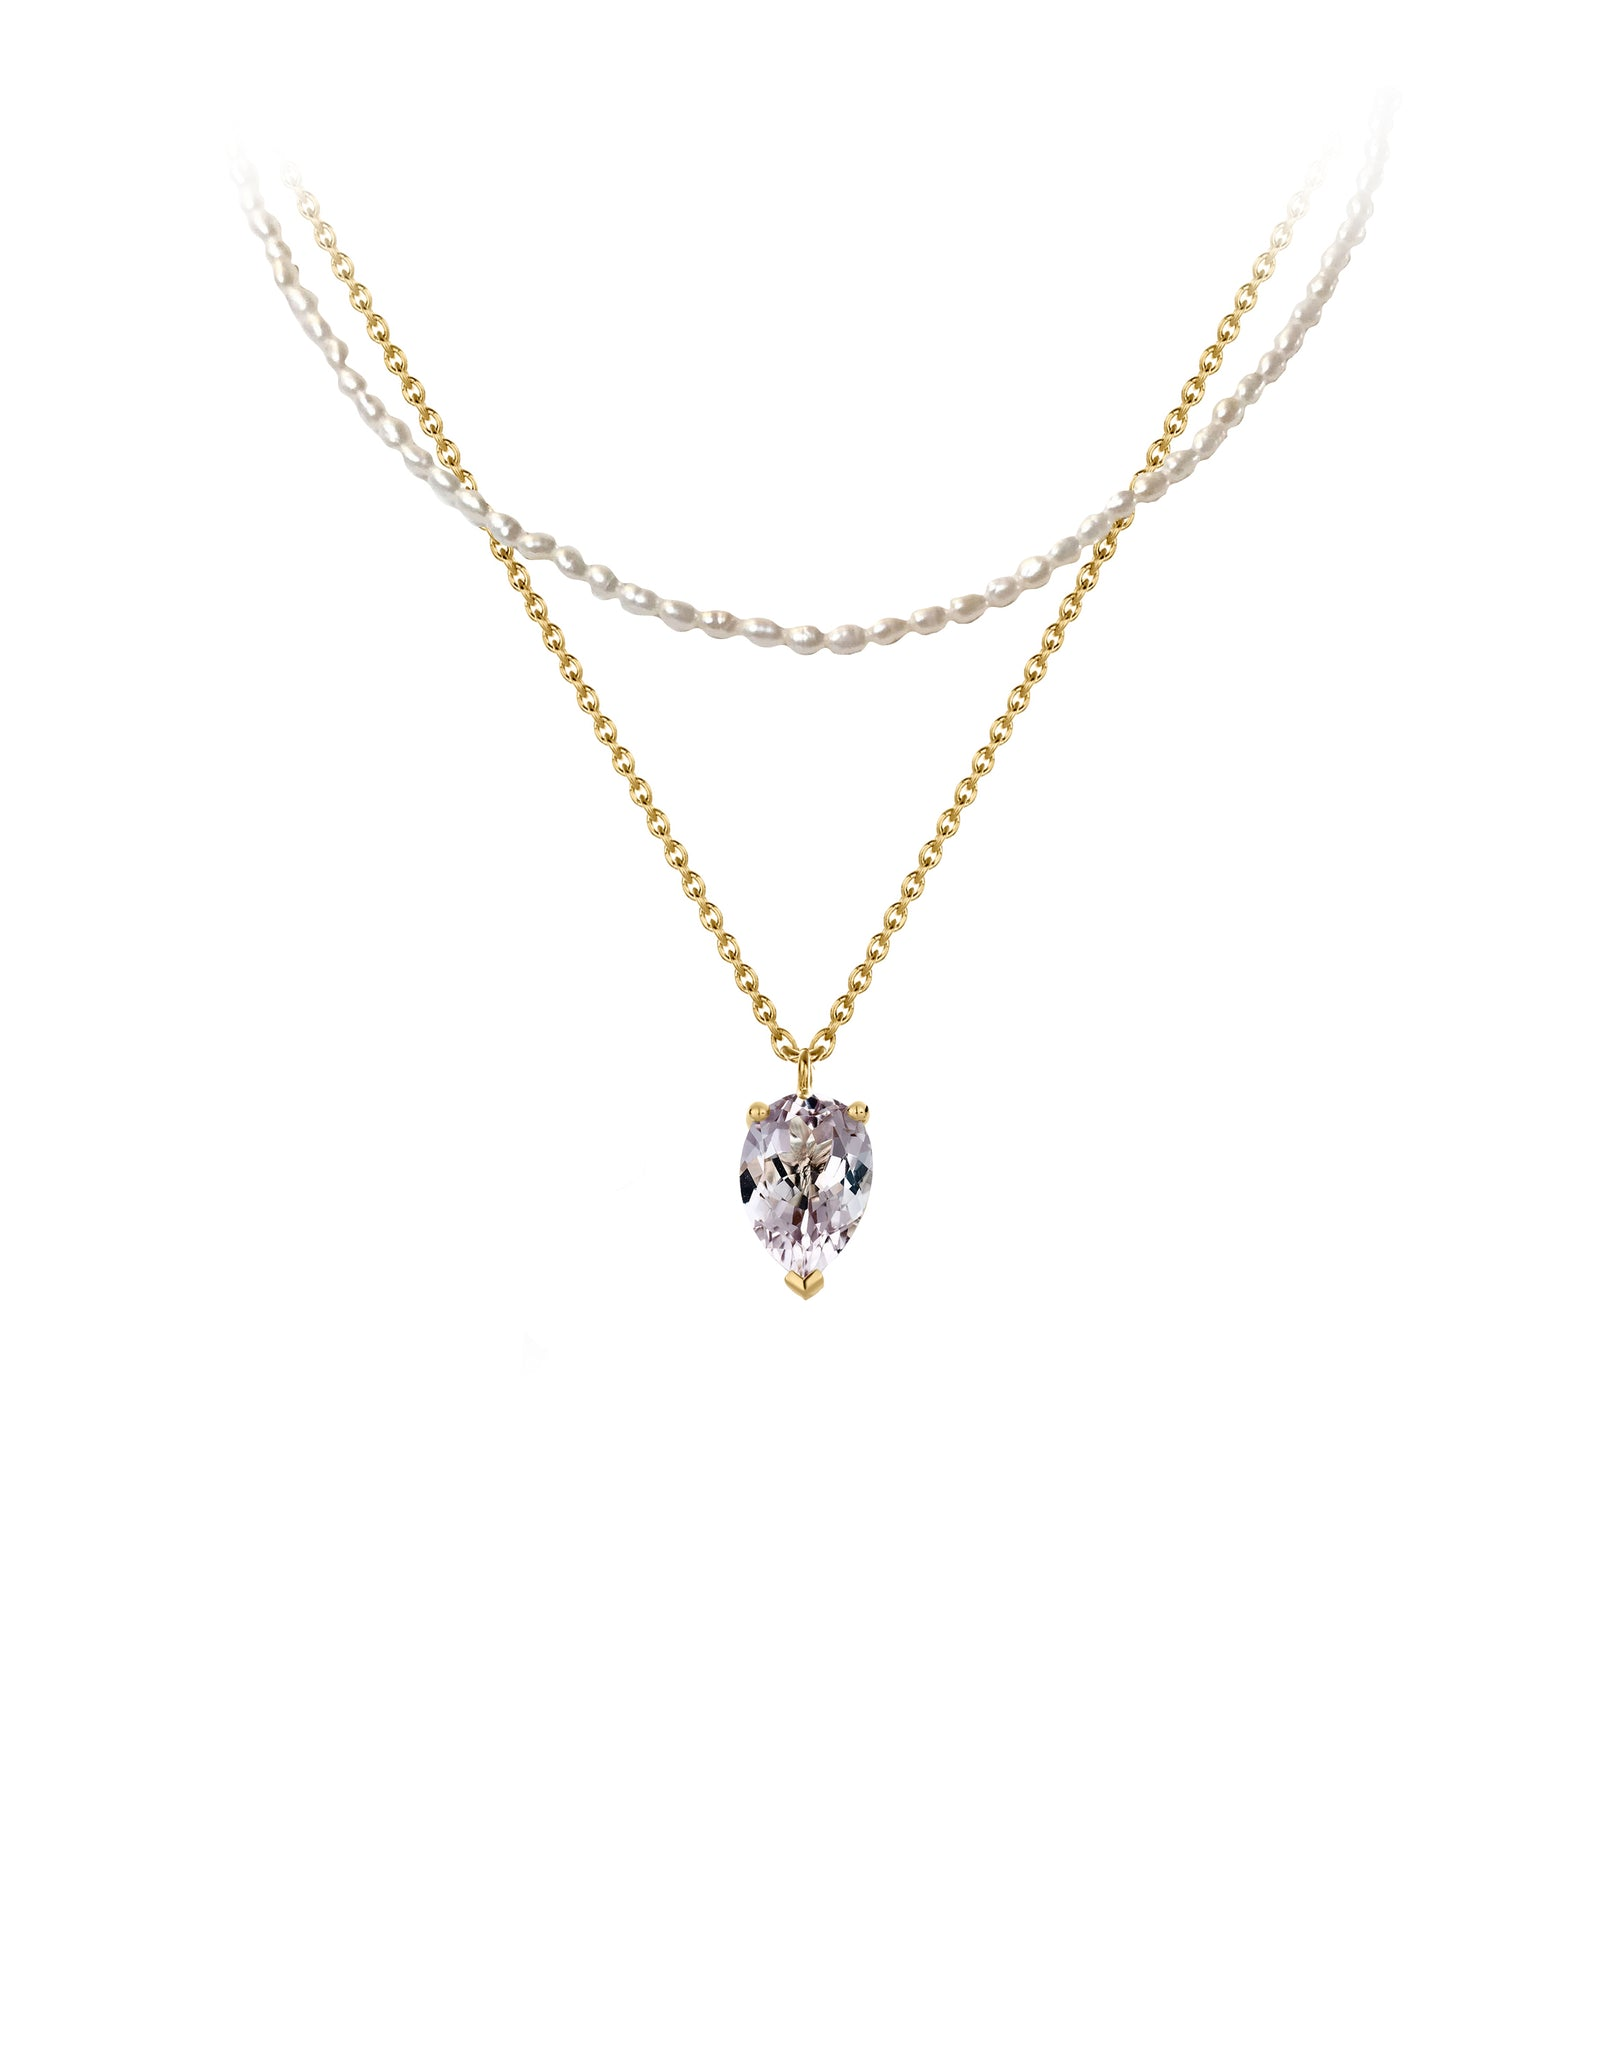 Necklace 9K gold amethyst and pearls - bloom necklace pearl and amethyst - Nayestones